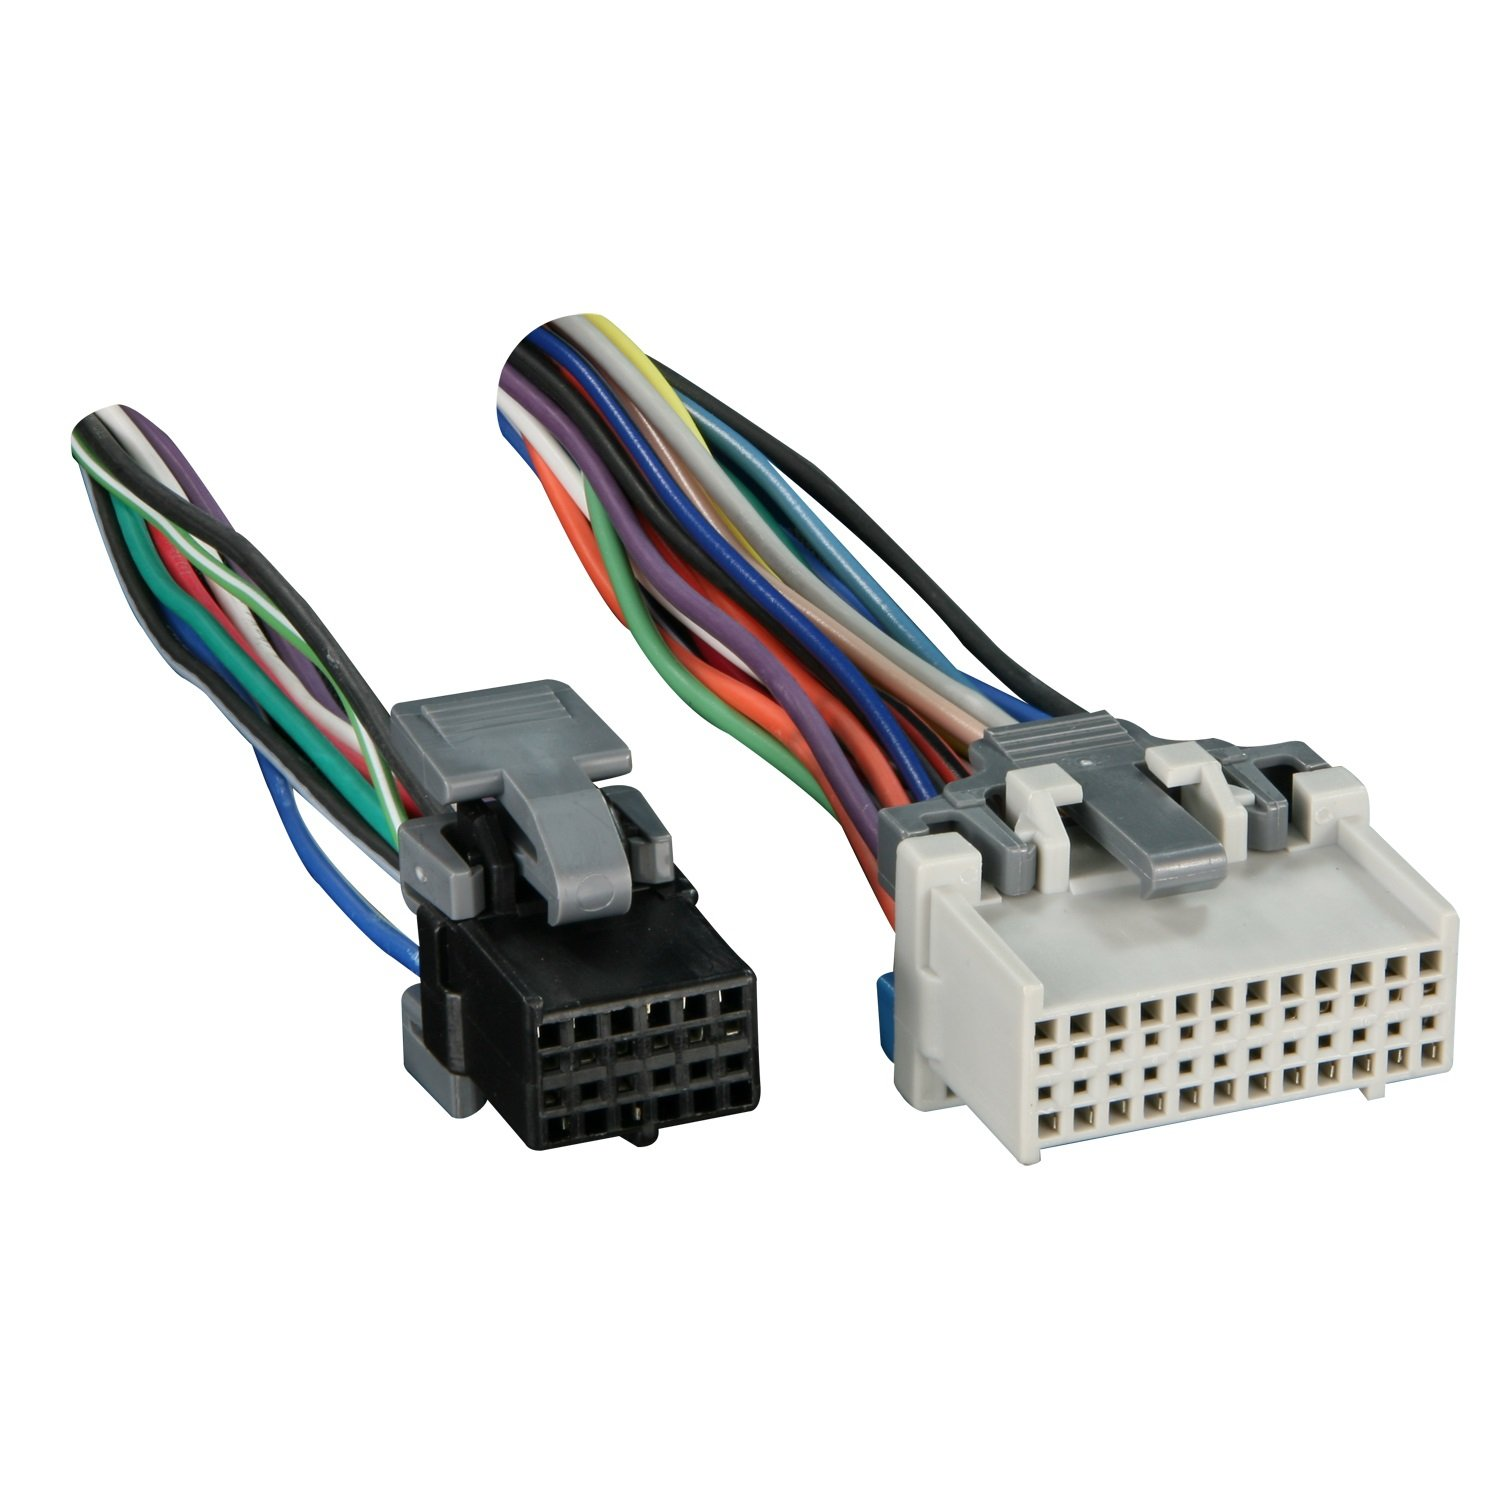 711log4bdML._SL1500_ amazon com metra turbowires 71 2003 1 wiring harness car electronics  at alyssarenee.co